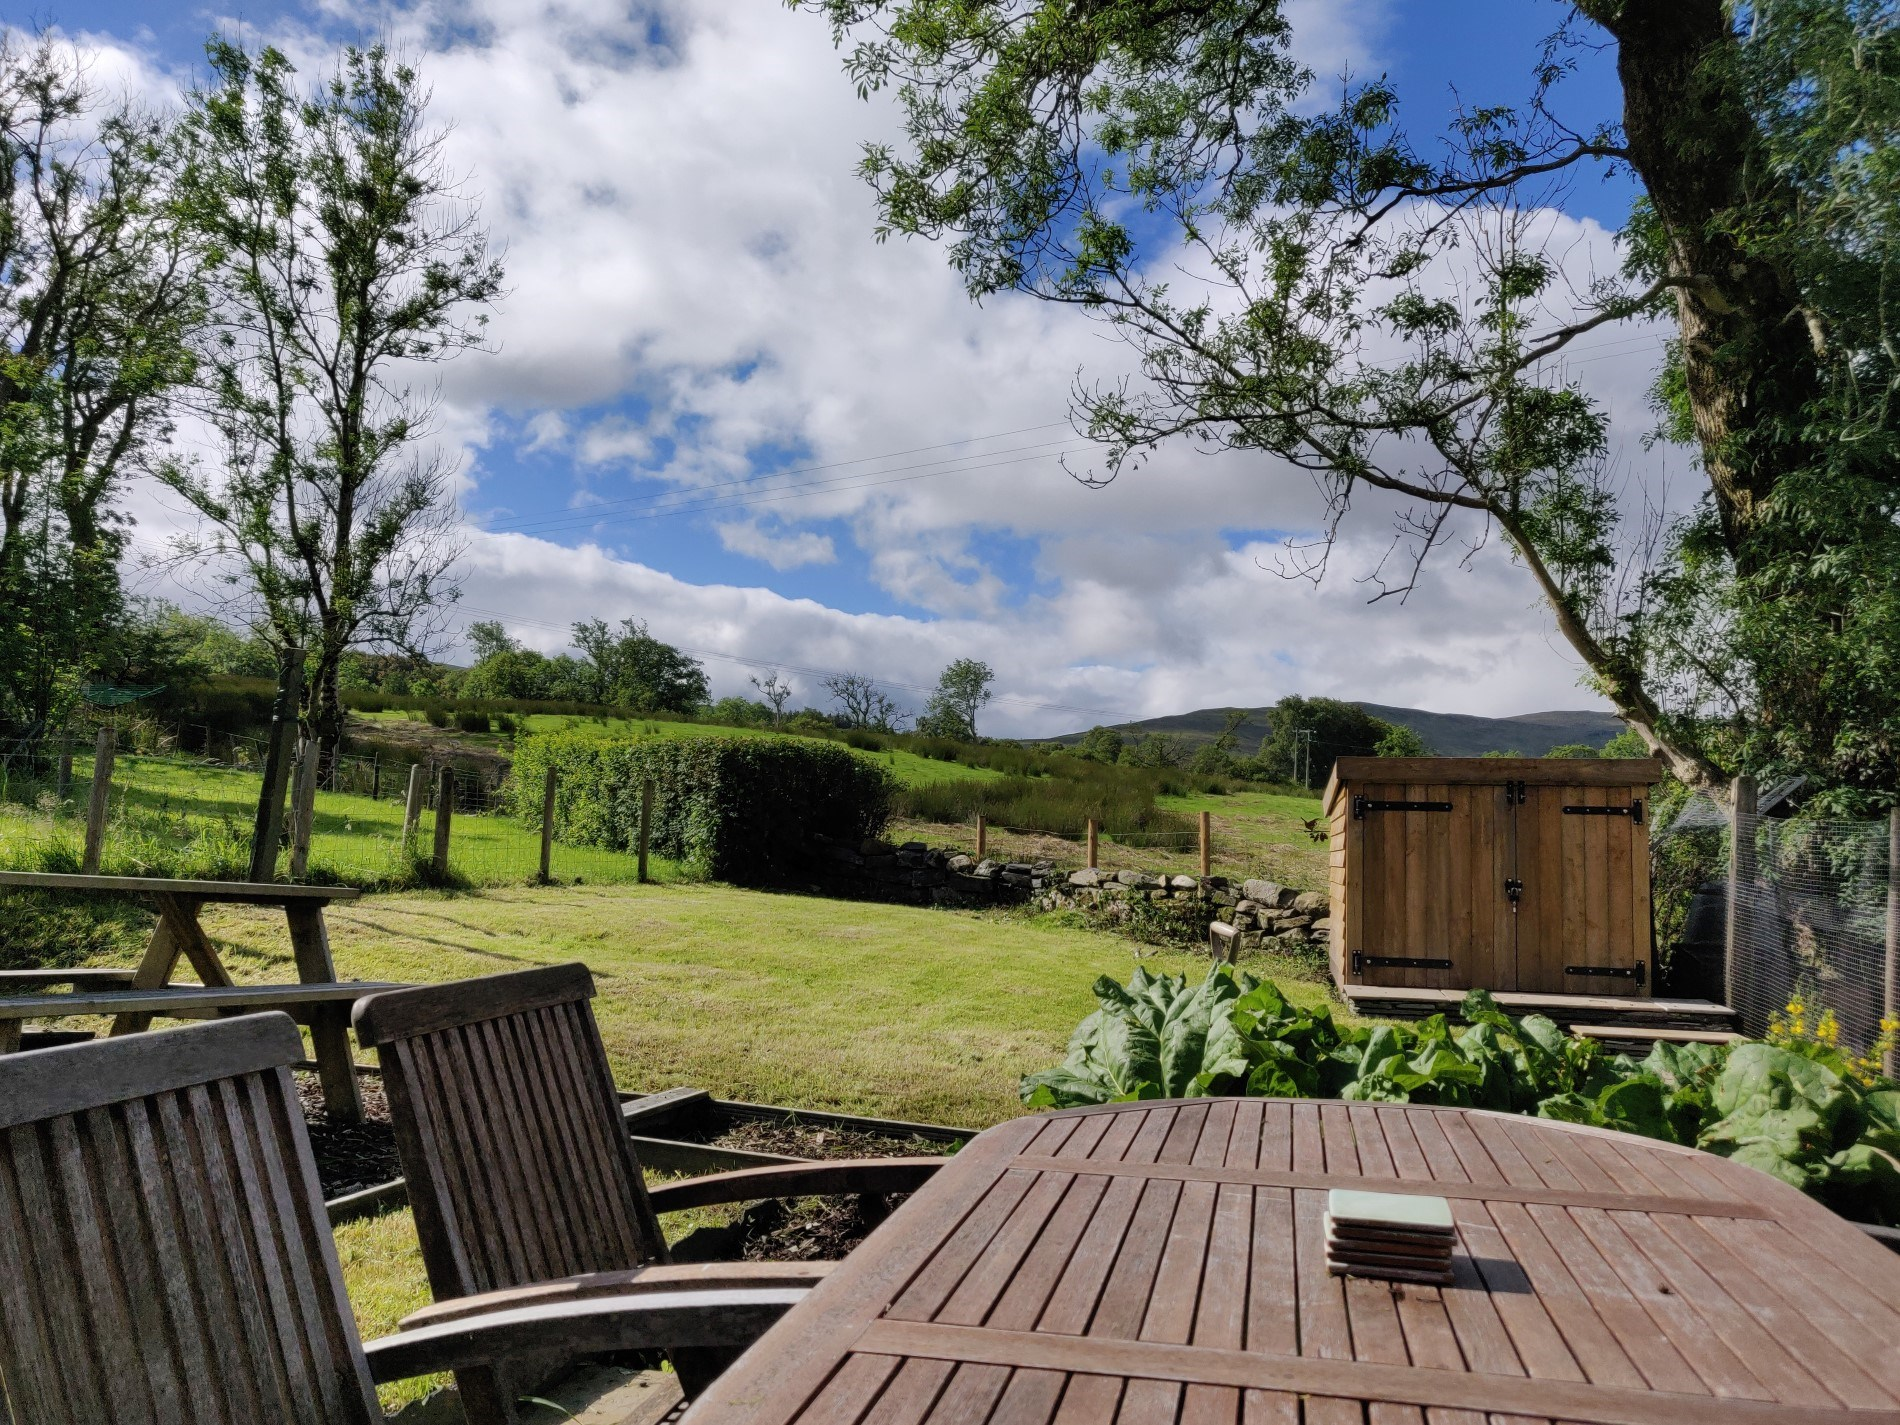 2 Bedroom Cottage in Betws-y-coed, Snowdonia, North Wales and Cheshire